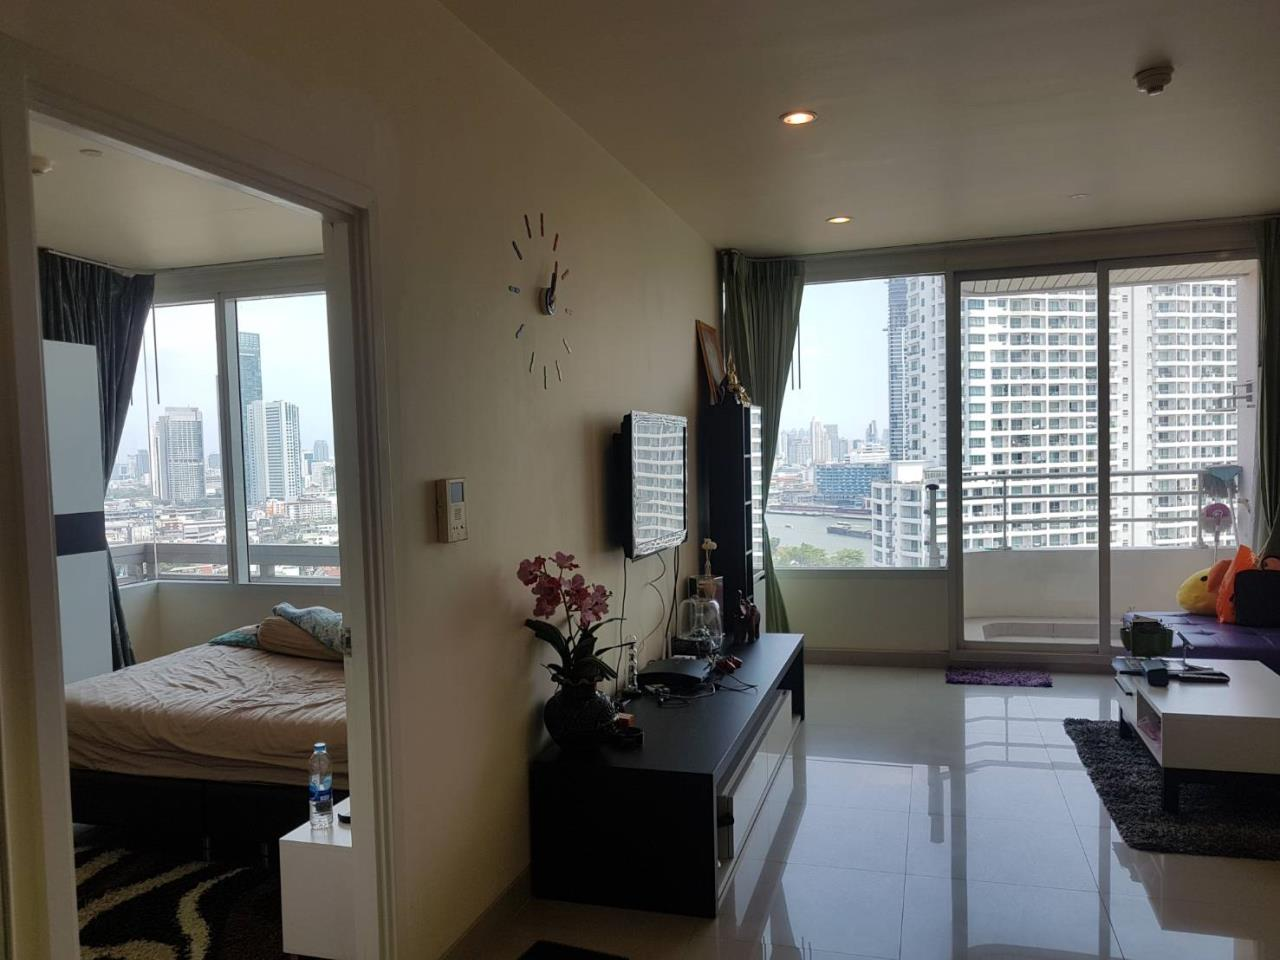 SALA ESTATE Agency's WATERMARK CHAOPHRAYA RIVER – RIVERSIDE-NEAR ICON SIAM,豪华公寓,河景房, 2卧2卫,家具齐全 2